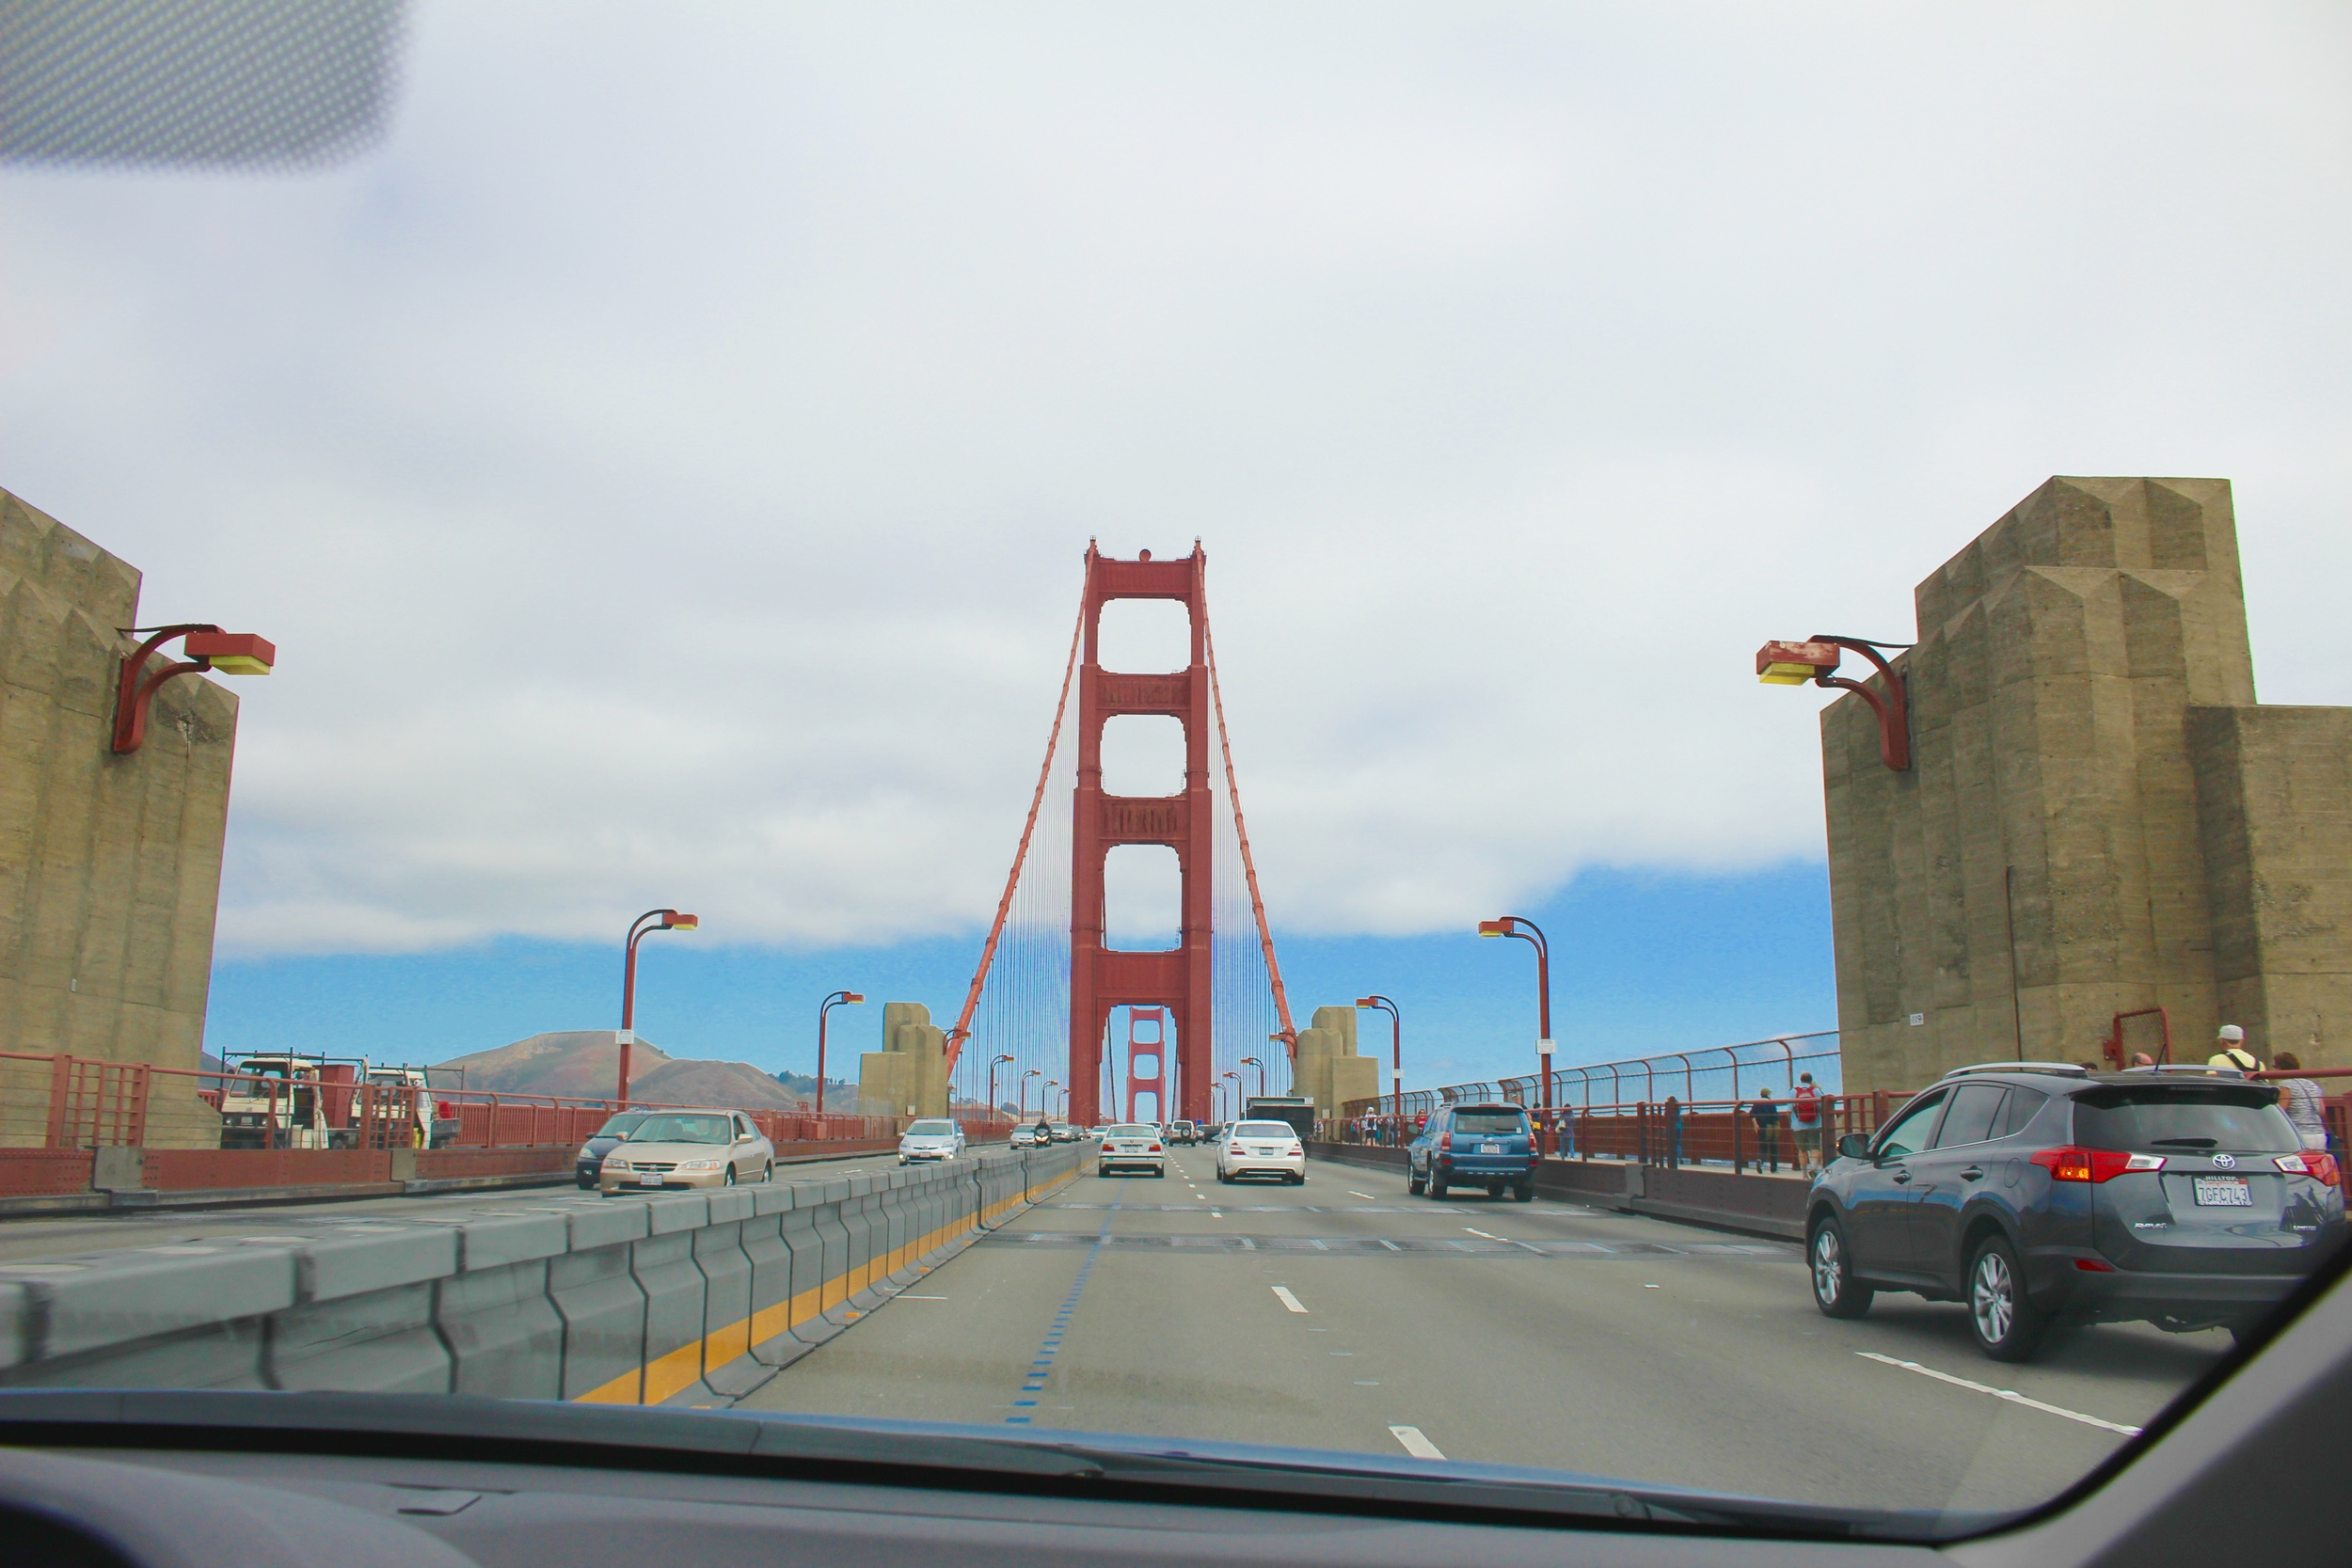 Crossing the bridge to get to the museum.